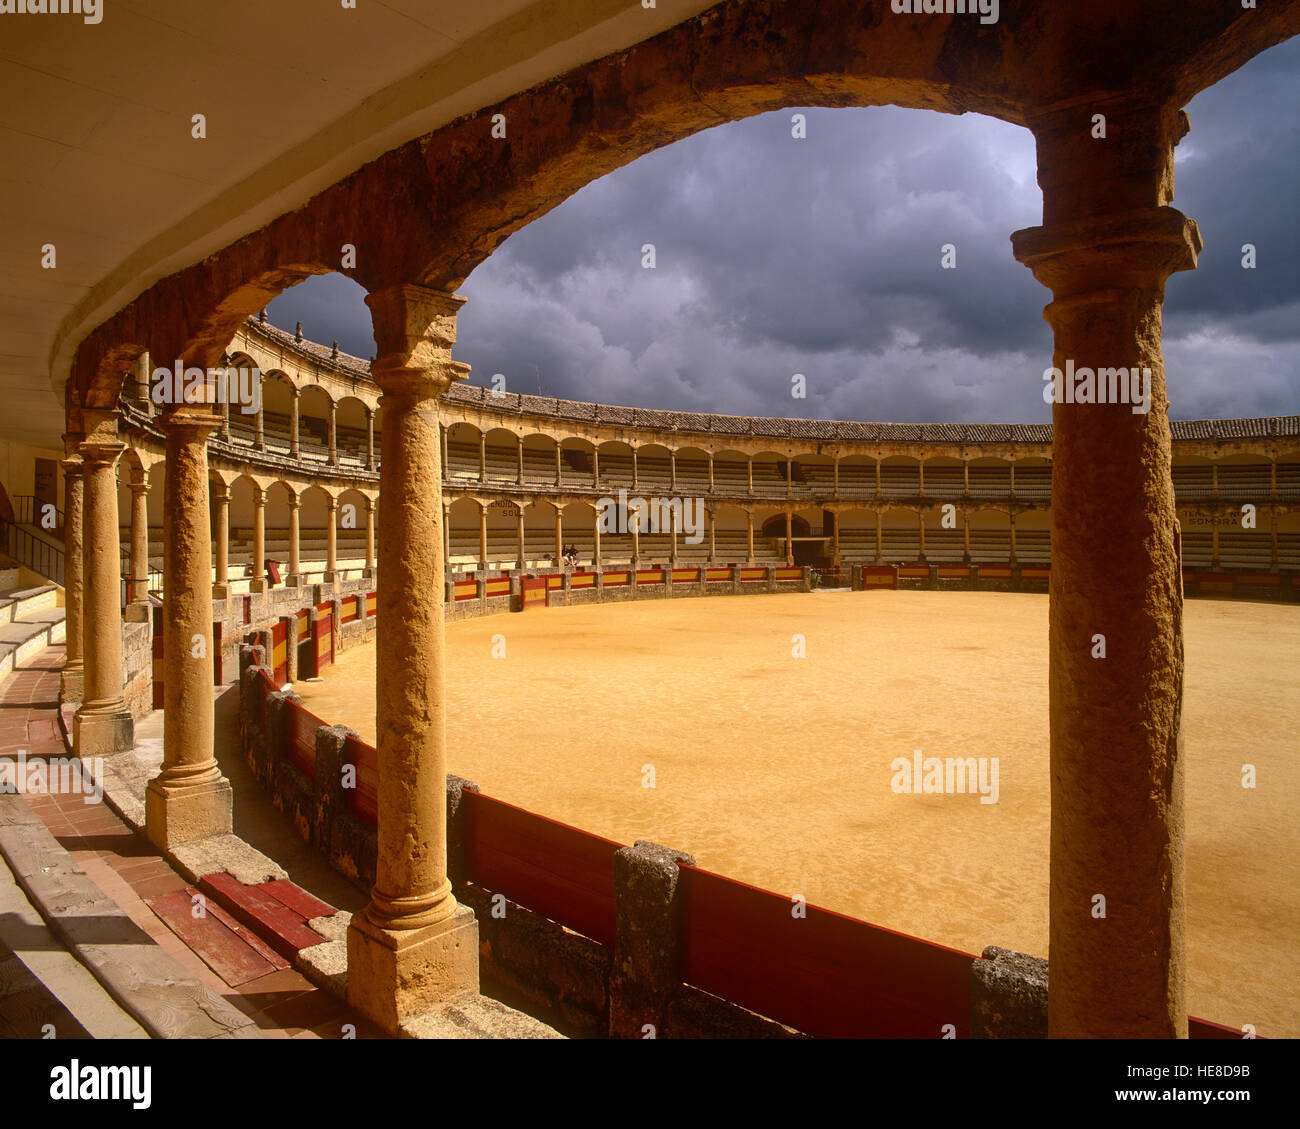 Ronda Bull Ring and storm clouds, Malaga Province, Andalusia, Spain. - Stock Image